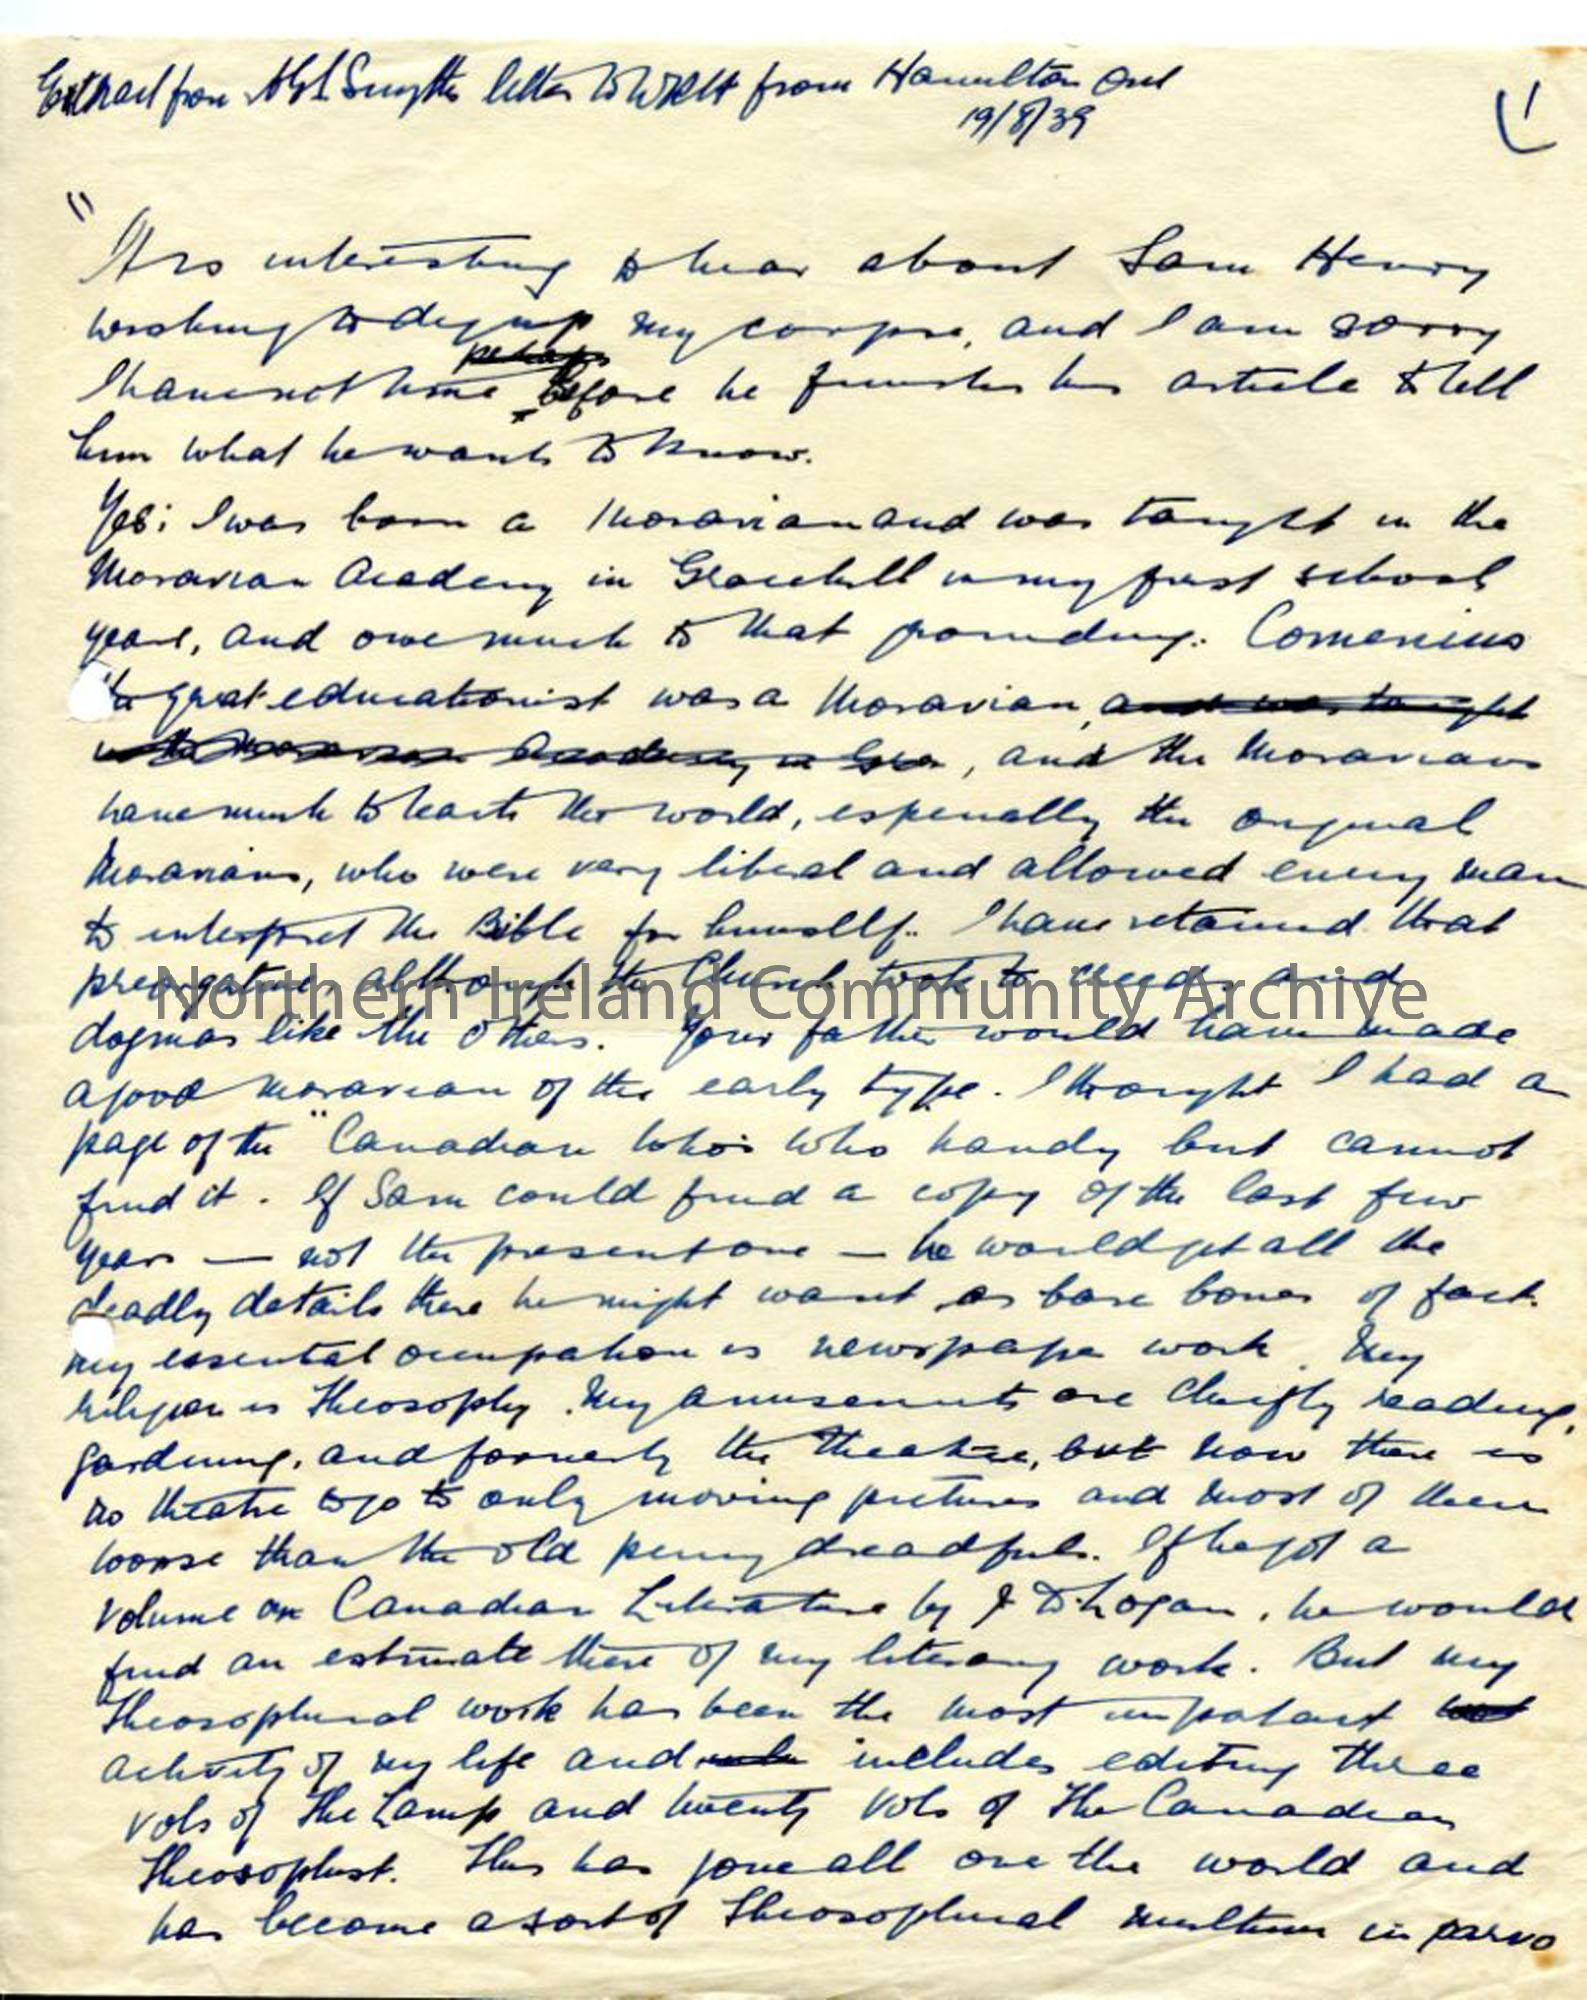 Handwritten extract from letter